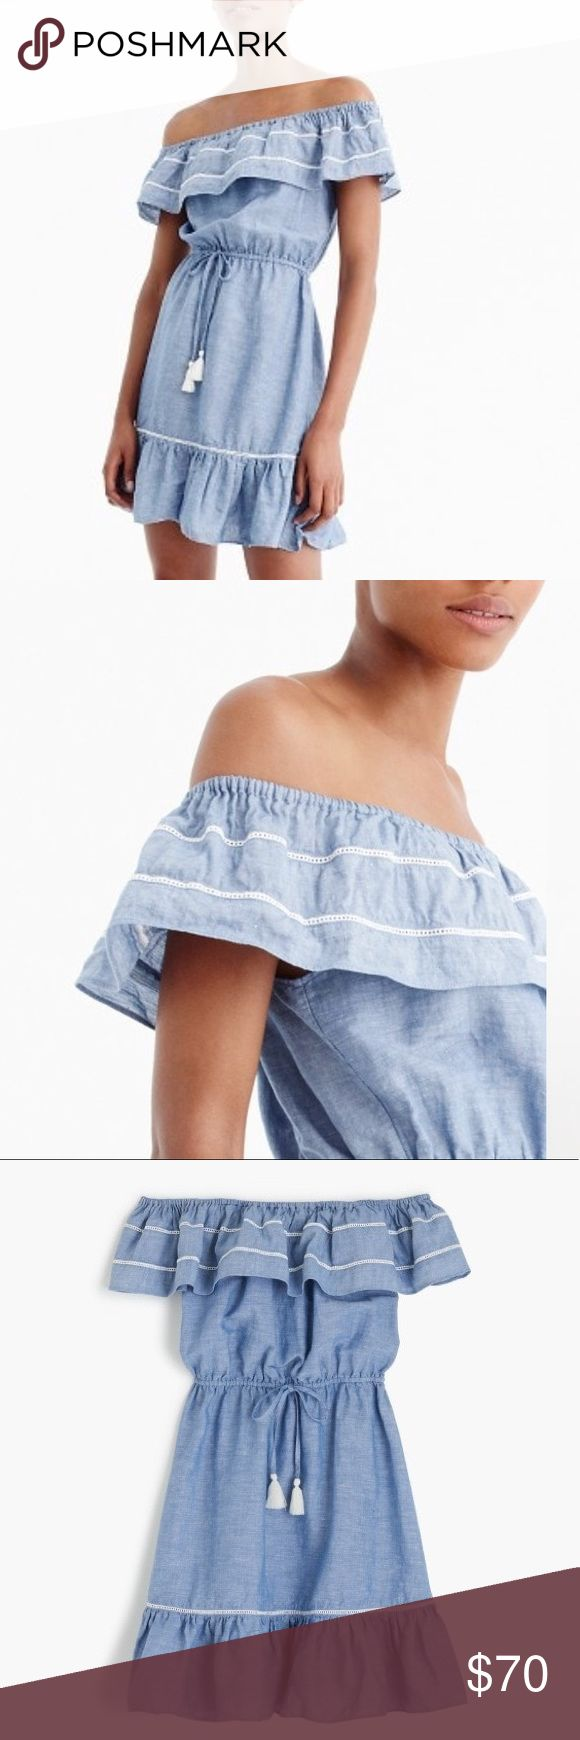 "J. Crew Denim Ruffle Off The Shoulder Beach Dress NWT perfect spring/summer dress from J.Crew! Features ruffle top detail, adjustable drawstring tie elastic waist, and eyelet trim. Elastic at top top for nice fit on shoulders Material is cotton/linen.  Length 30""  Waist 14.5"" measured flat- keep in mind this can stretch and also shrink because it's adjustable J. Crew Dresses"